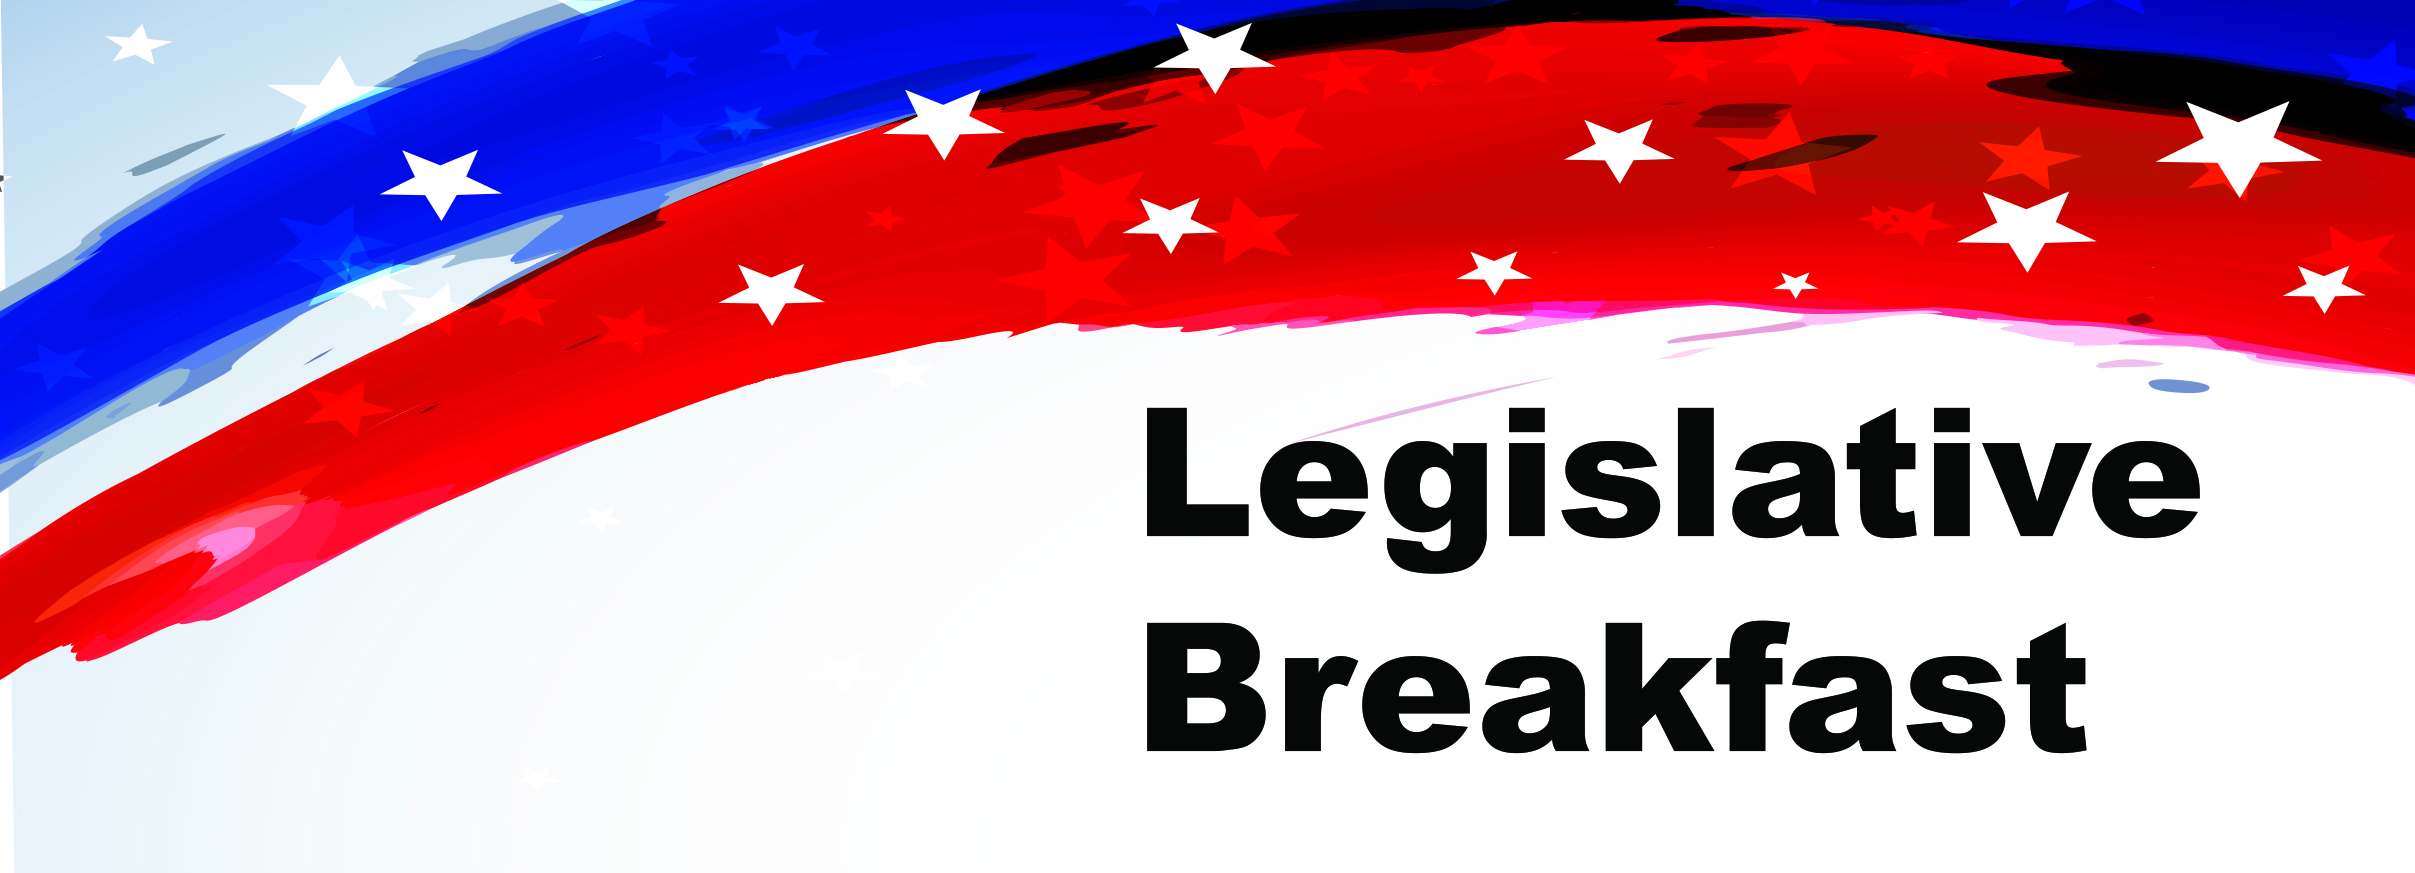 January 30th Legislative Breakfast with Hamilton County Commissioner Candidates